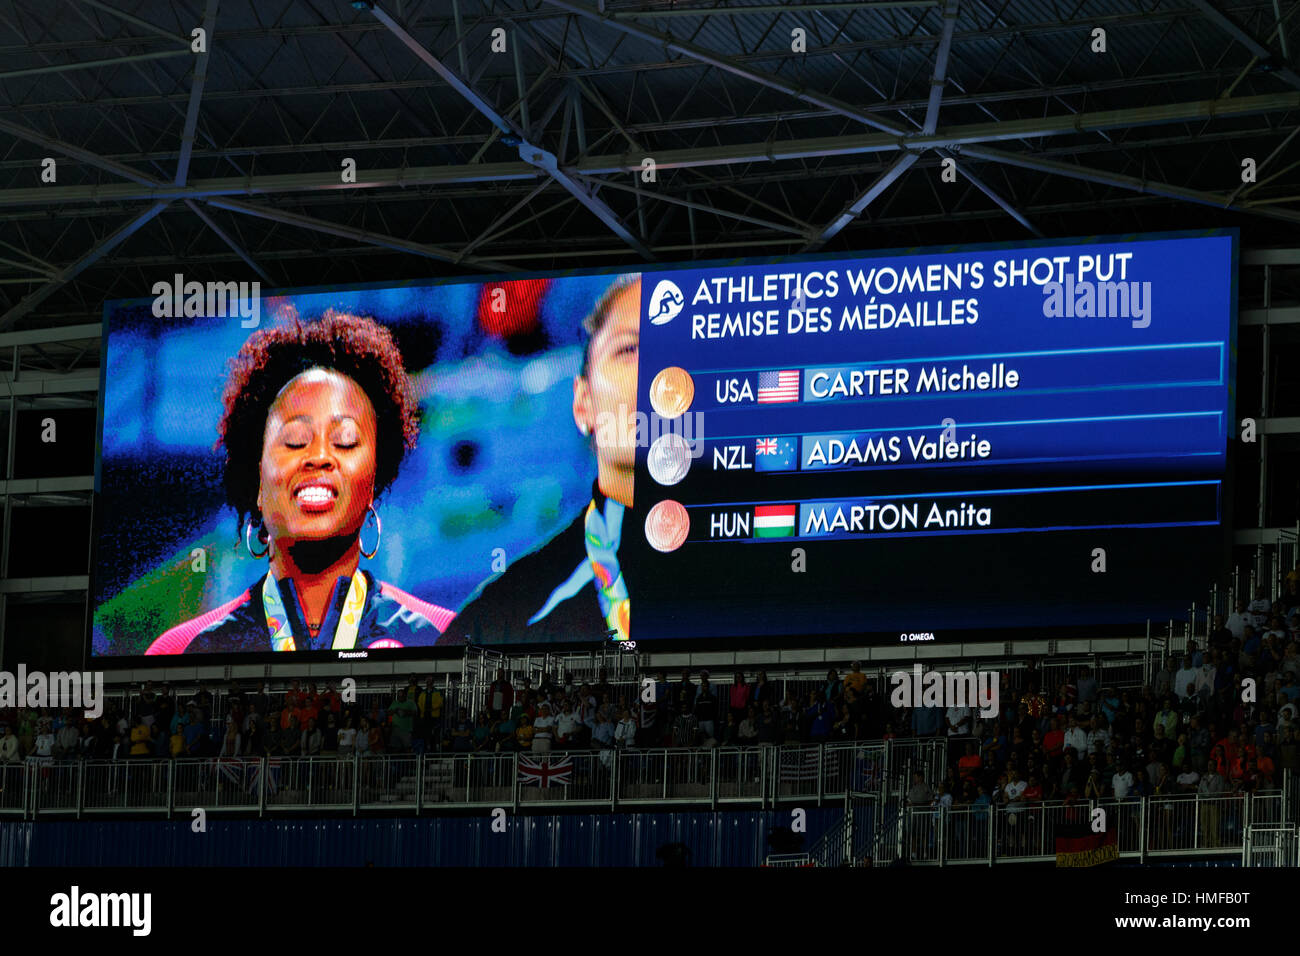 Rio de Janeiro, Brazil. 13 August 2016.  Video board showing Michelle Carter (USA) gold medal winner in the Women's - Stock Image